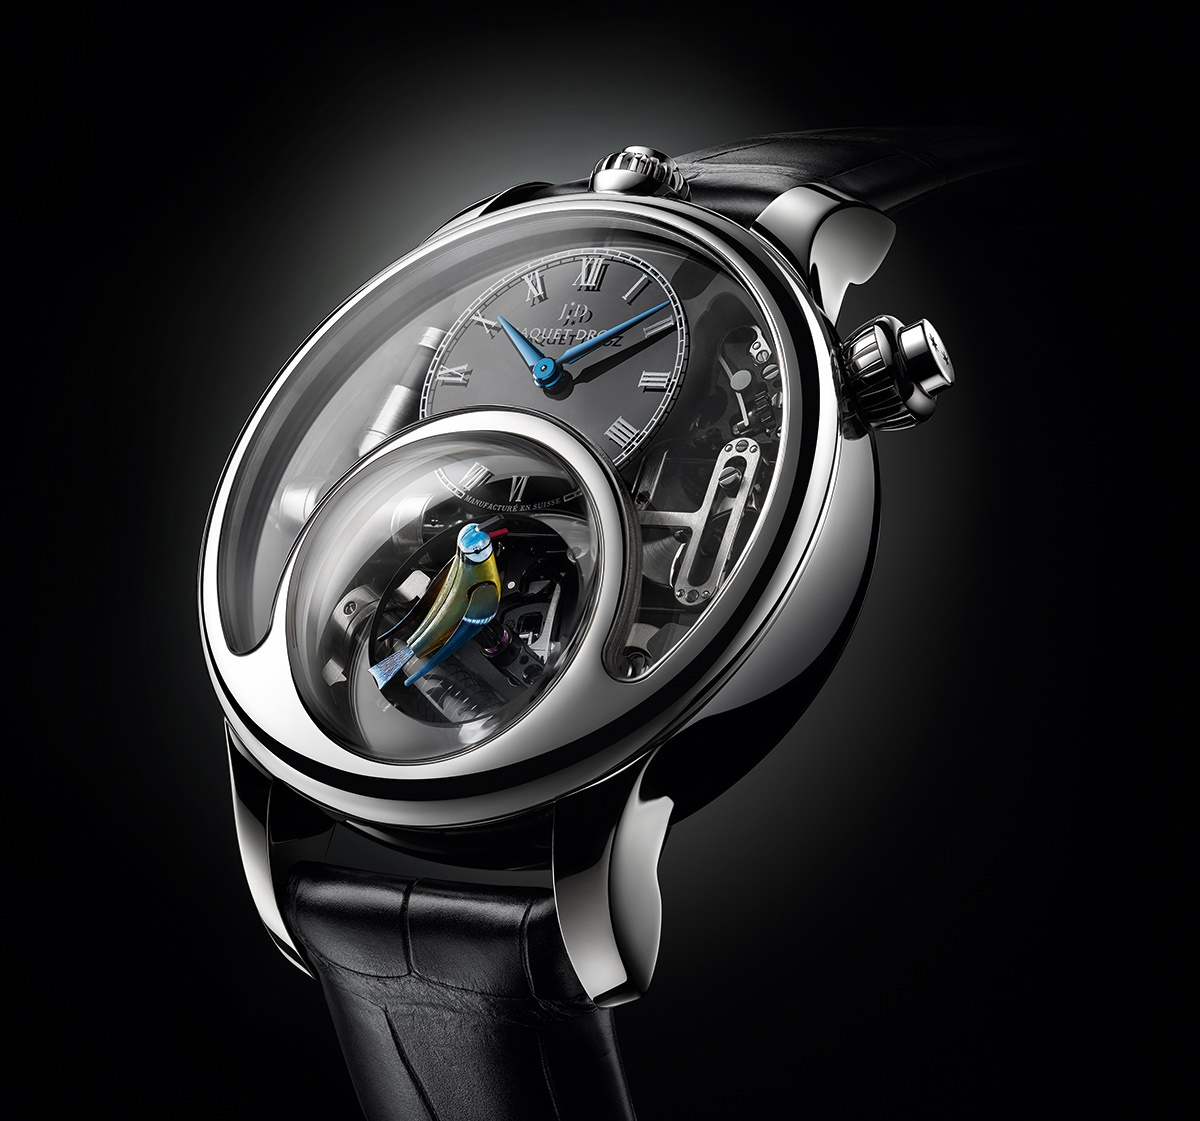 jaquet-droz-charming-bird-lauren-blog-4.jpg